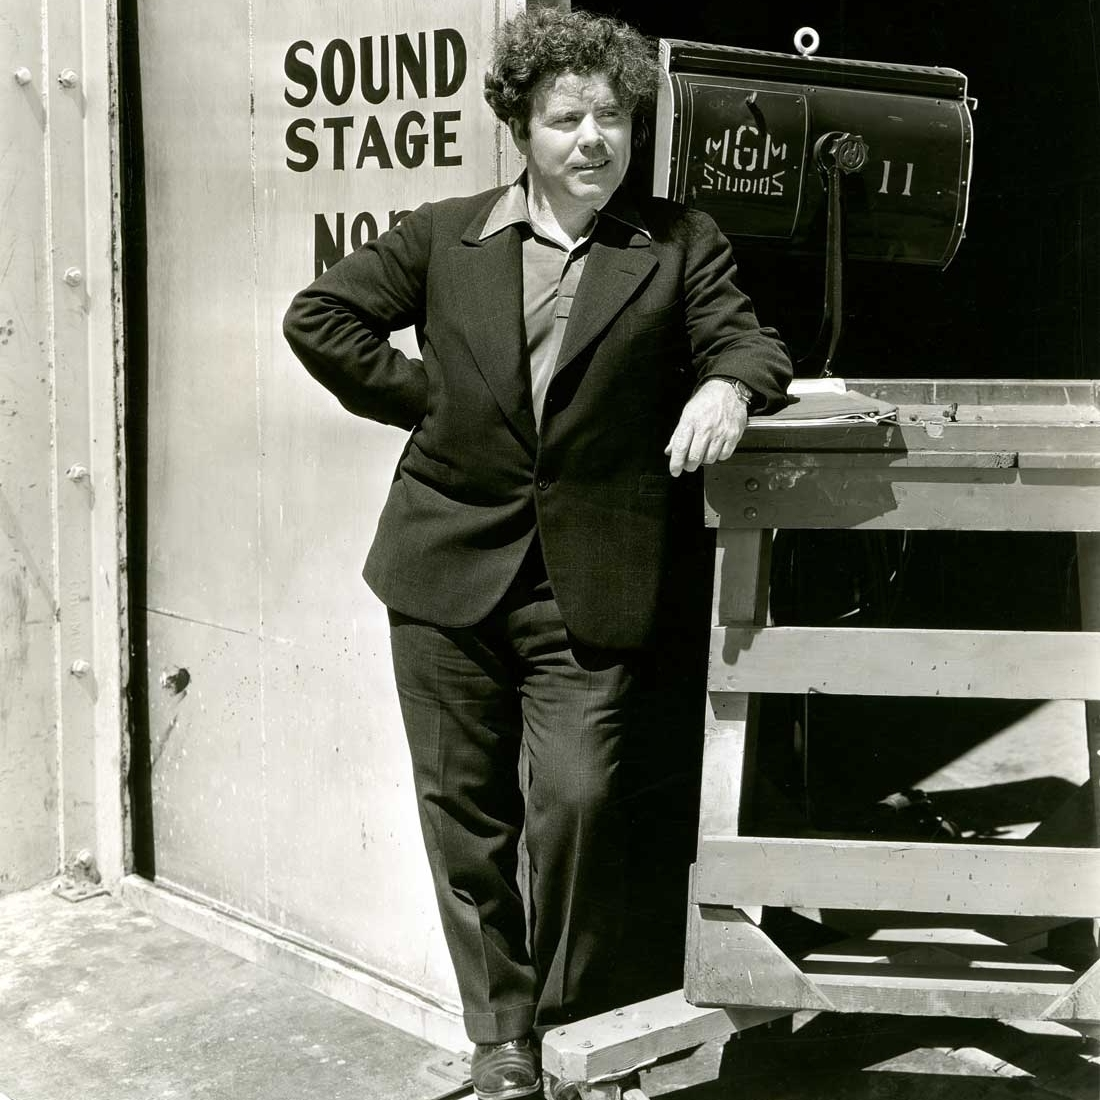 Caption: Jim Tully at an MGM soundstage, Credit: MGM